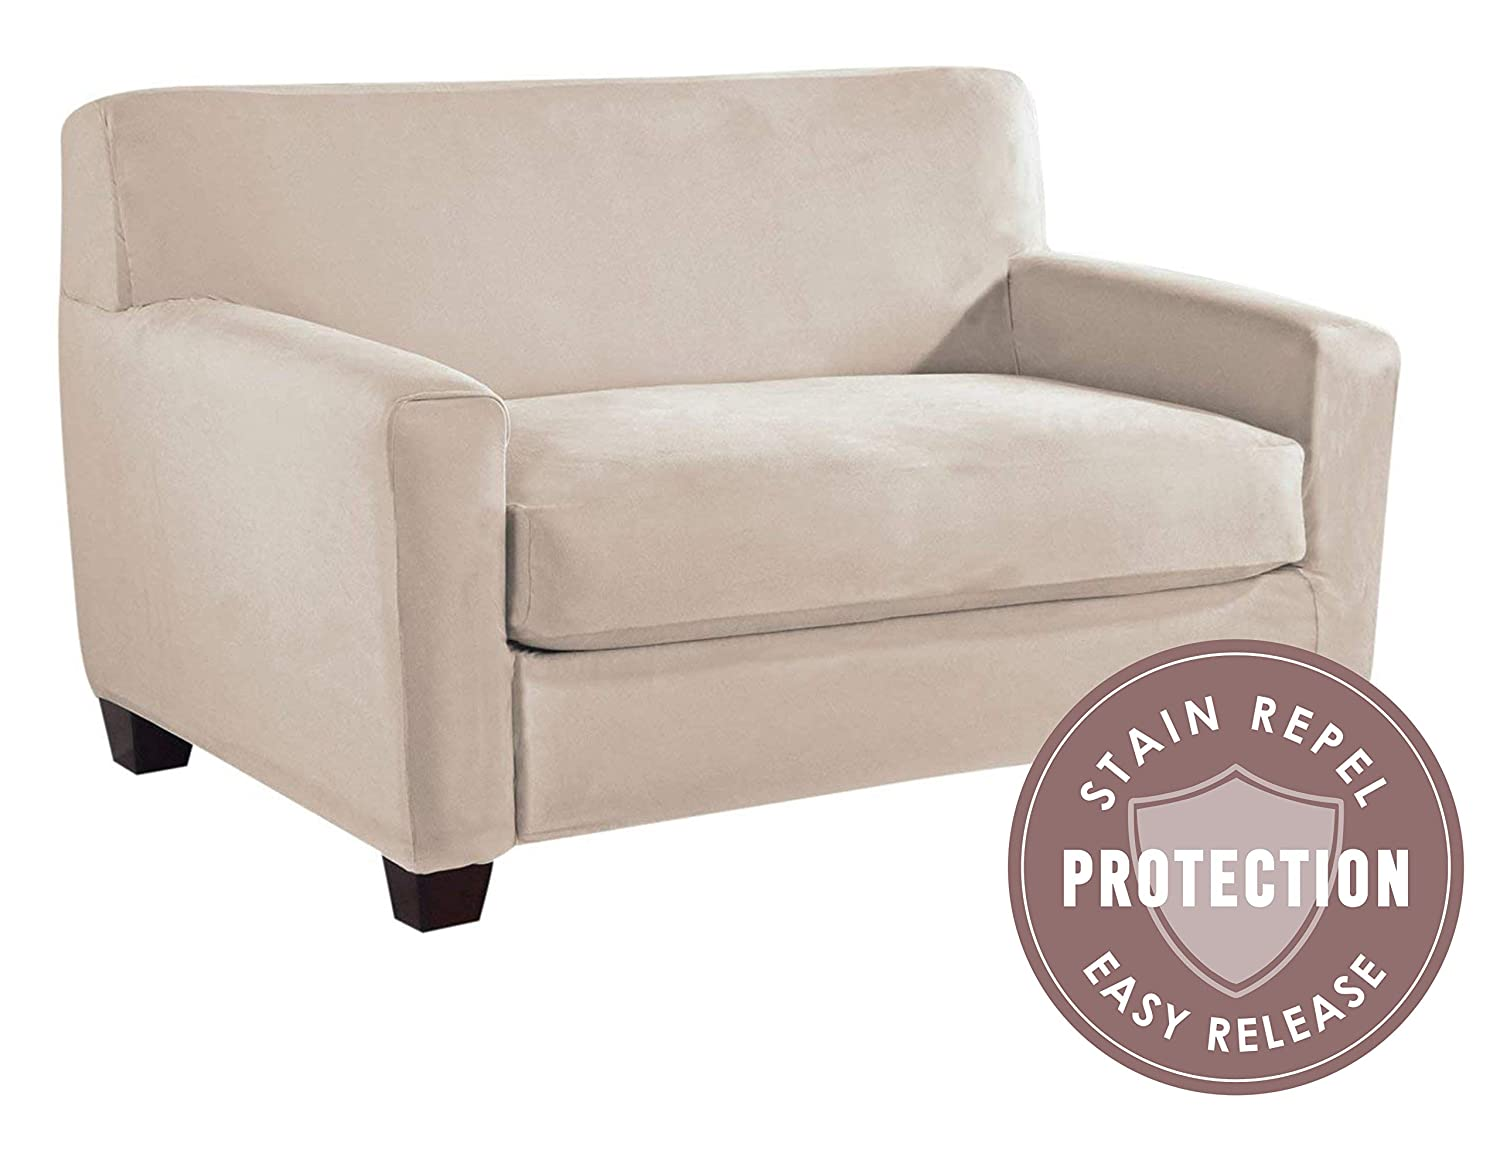 Tailor Fit Microsuede Sofa Furniture Slipcover with Detachable Cushion 823230 Ivory Stain Repellant /& Stretch Fit Material